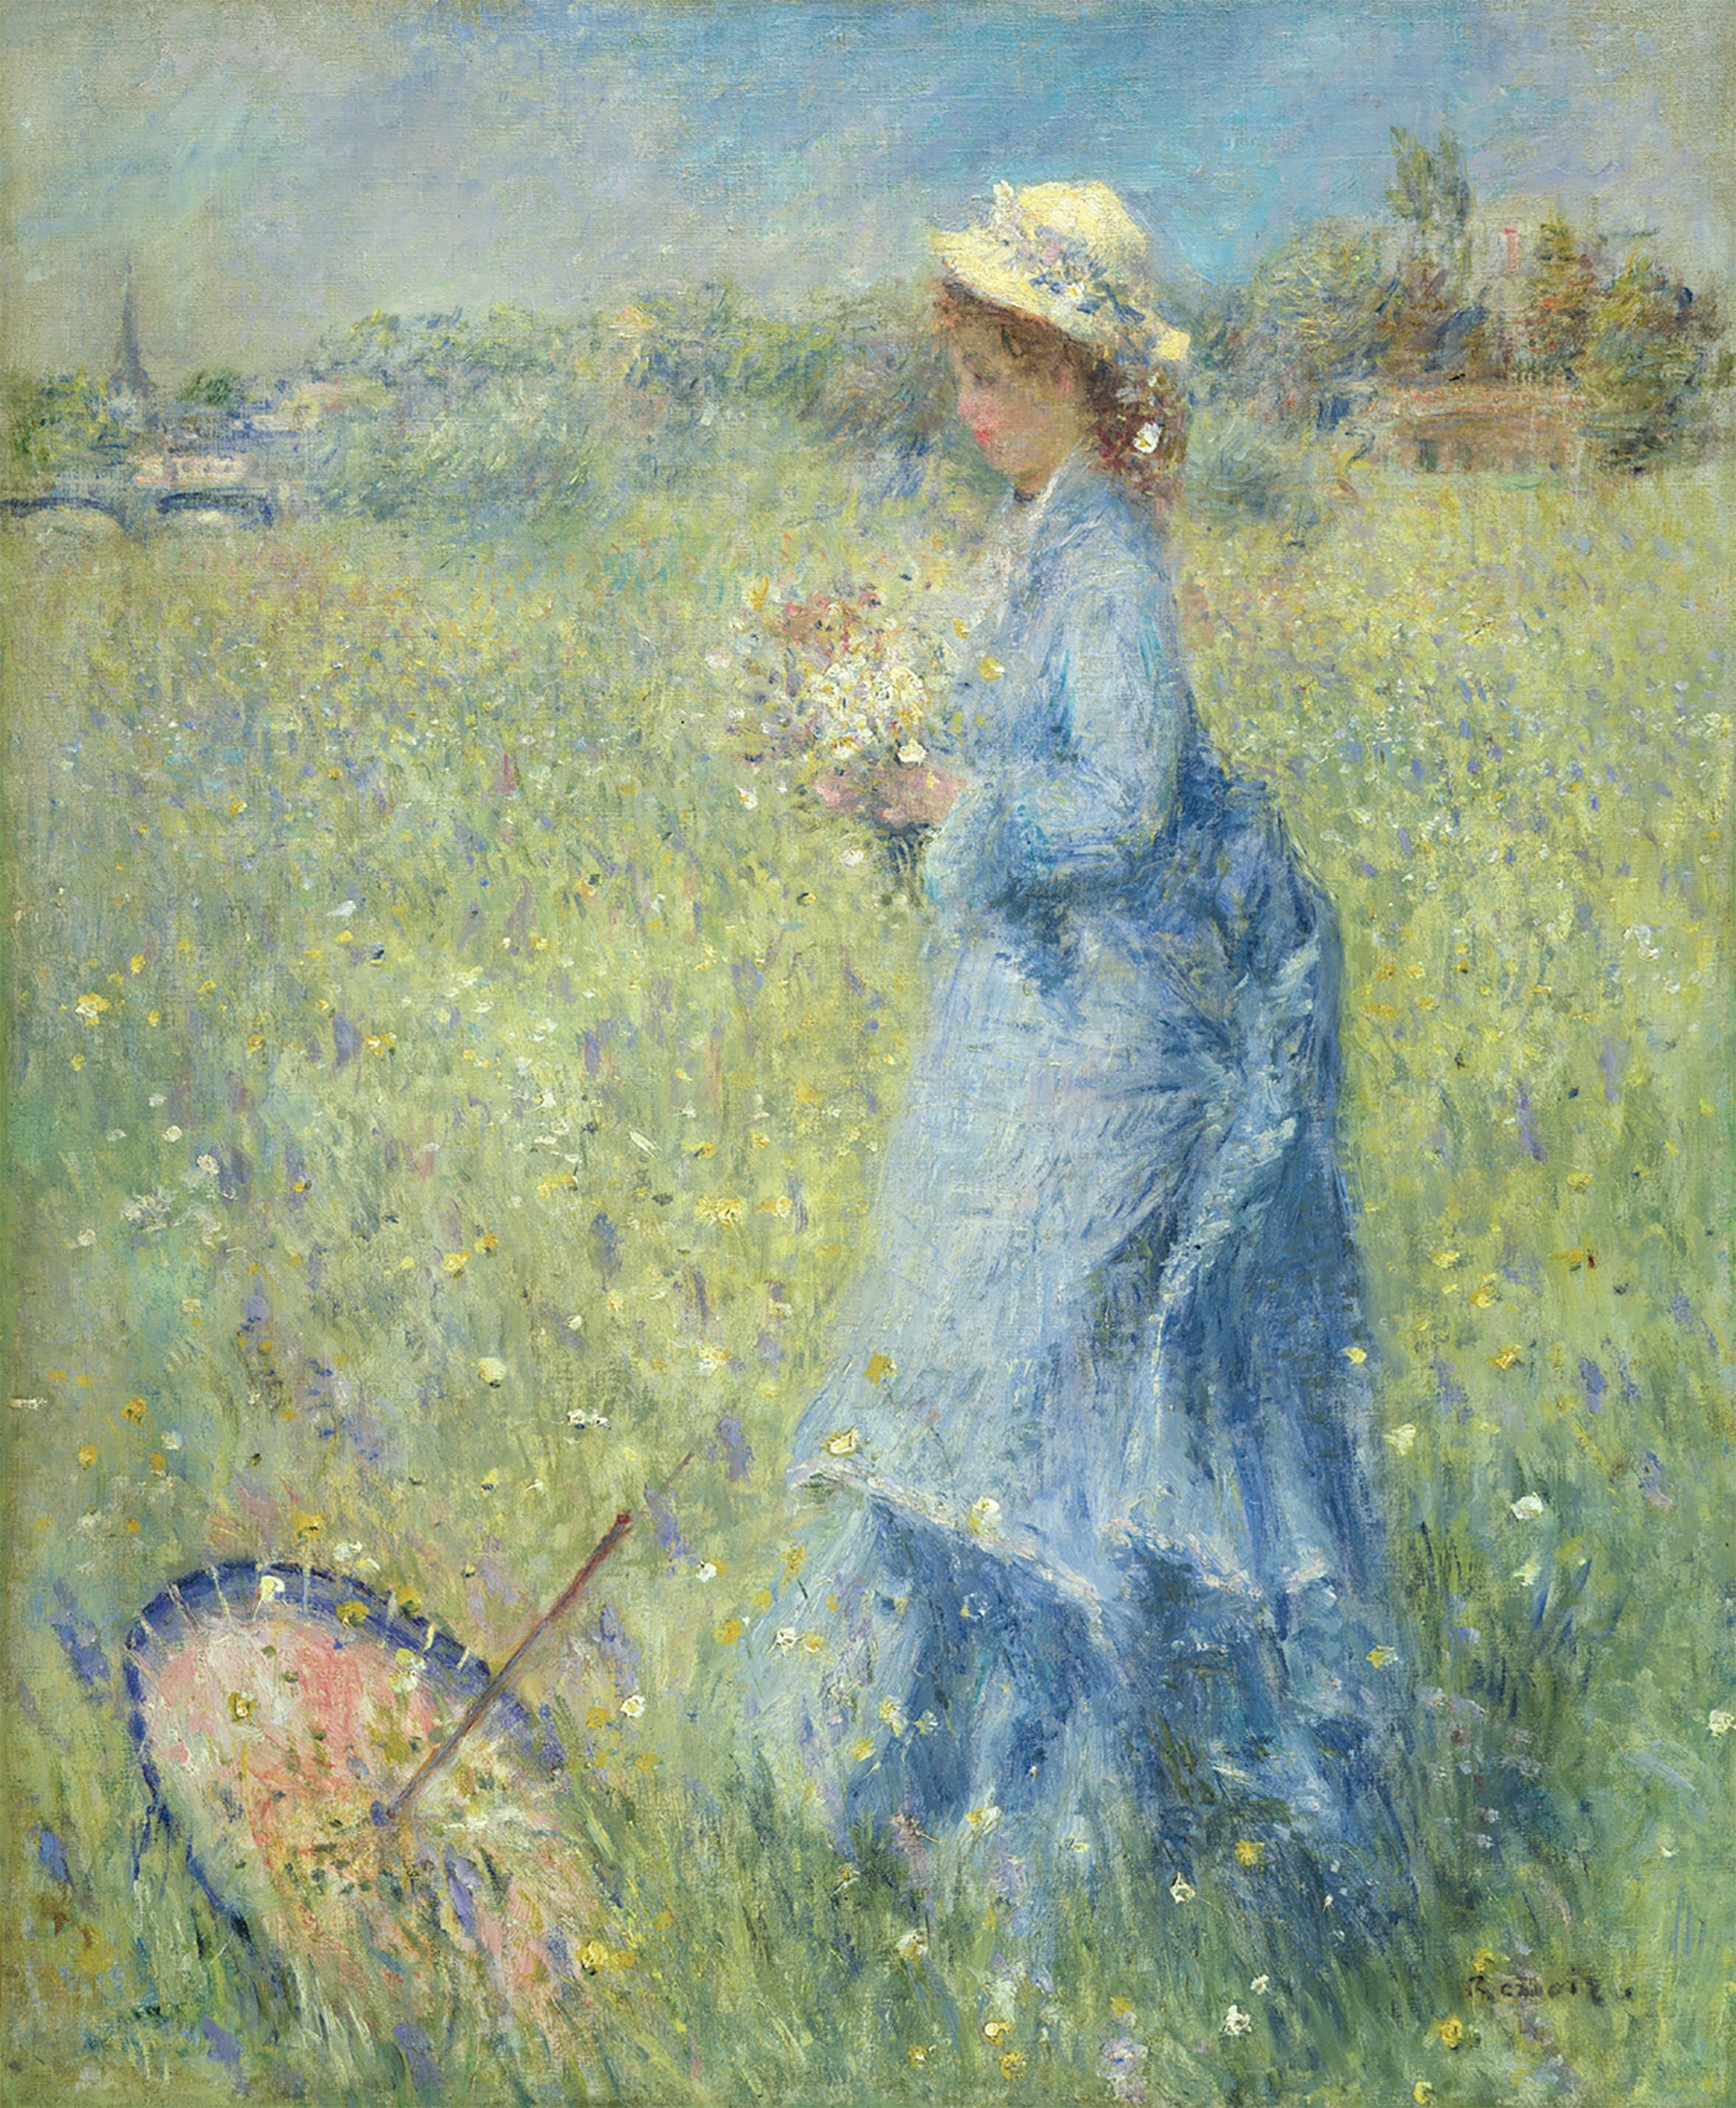 https://i2.wp.com/upload.wikimedia.org/wikipedia/commons/d/dc/Femme_cueillant_des_Fleurs_by_Pierre-Auguste_Renoir%2C_c1874%2C_oil_on_canvas.jpg